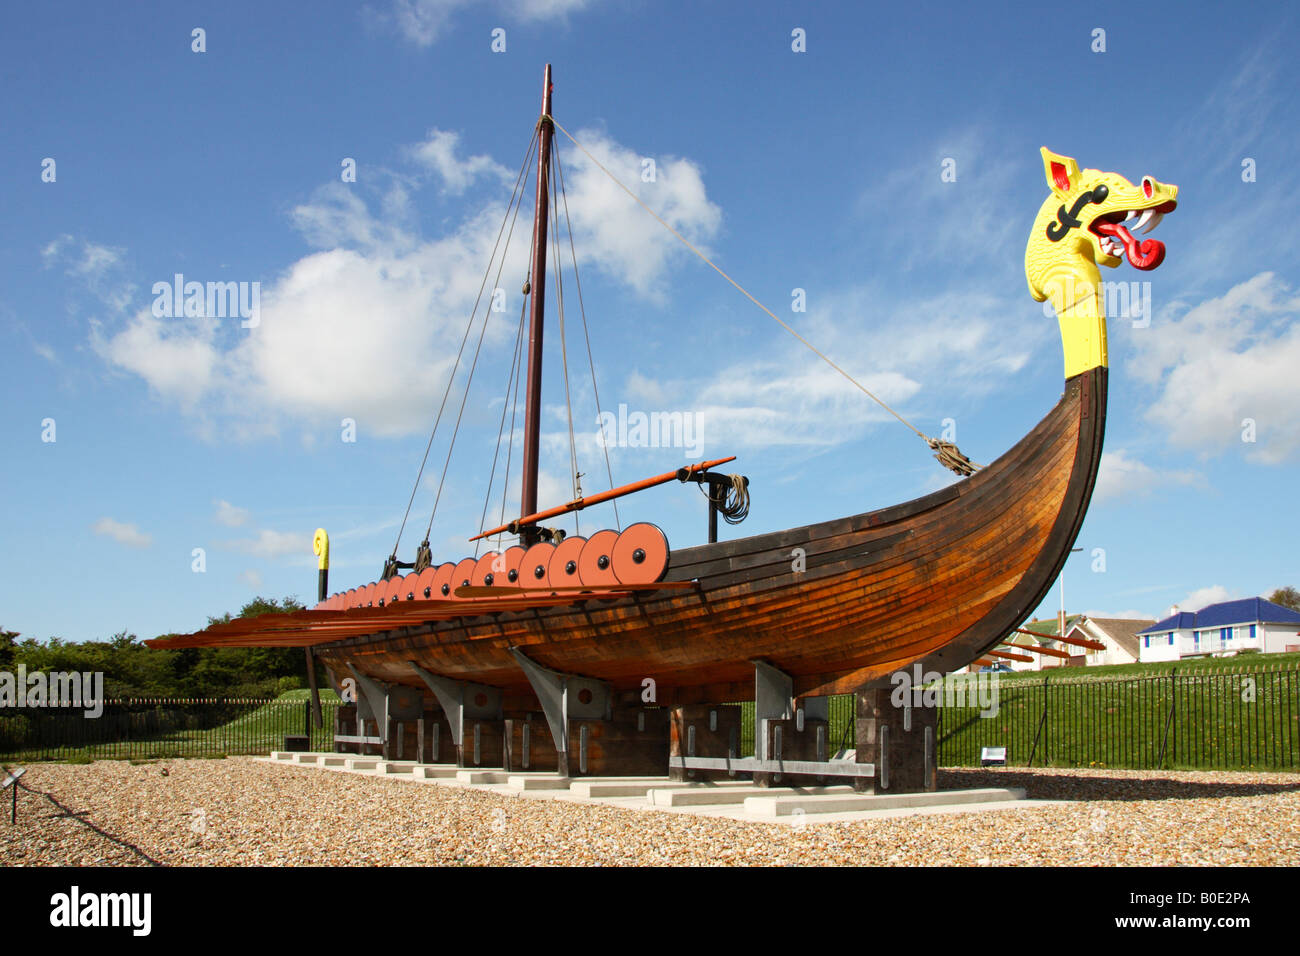 The 'Hugin' a replica of a Viking Ship. - Stock Image